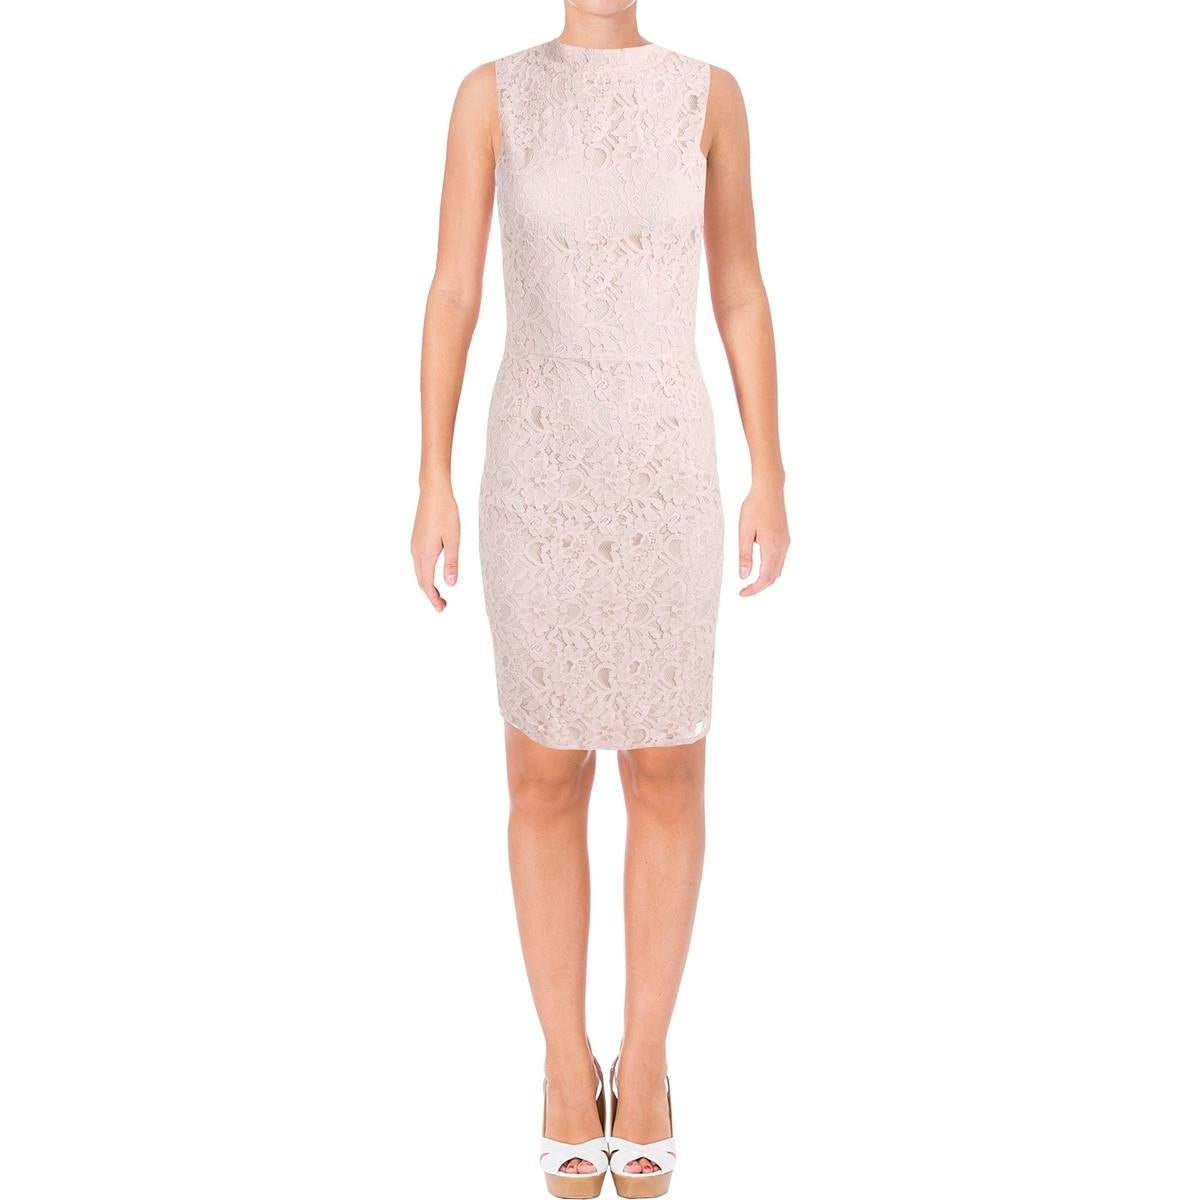 b367e6942d1 Shop Aqua Womens Bodycon Dress Lace Mock Neck - Free Shipping On Orders  Over  45 - Overstock.com - 17338339